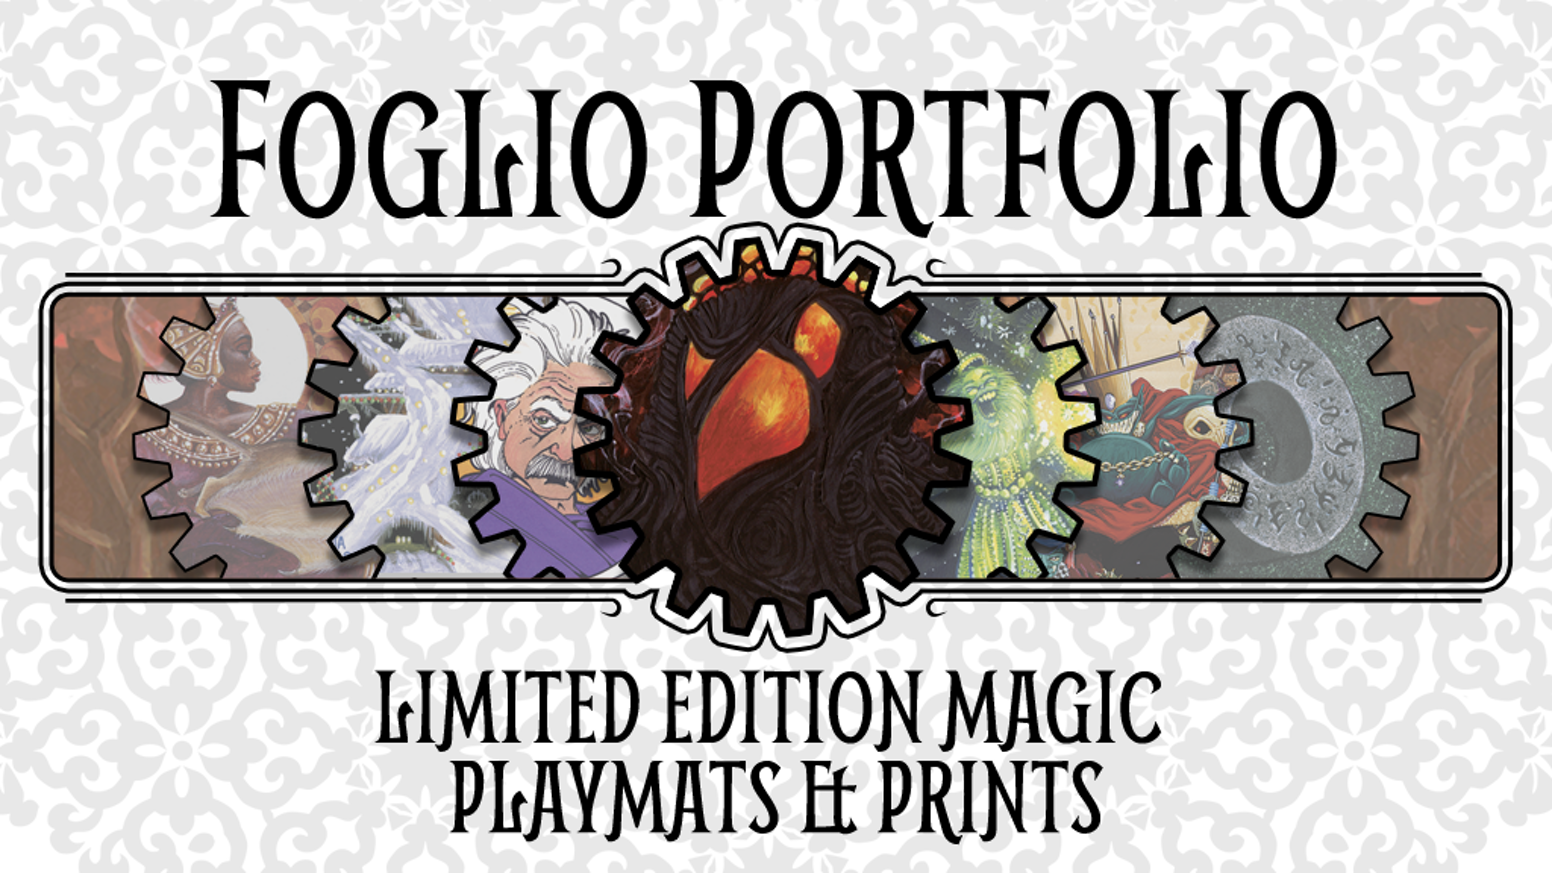 Limited Edition, Signed, Officially Licensed Magic: the Gathering Playmats and Prints by Kaja and Phil Foglio